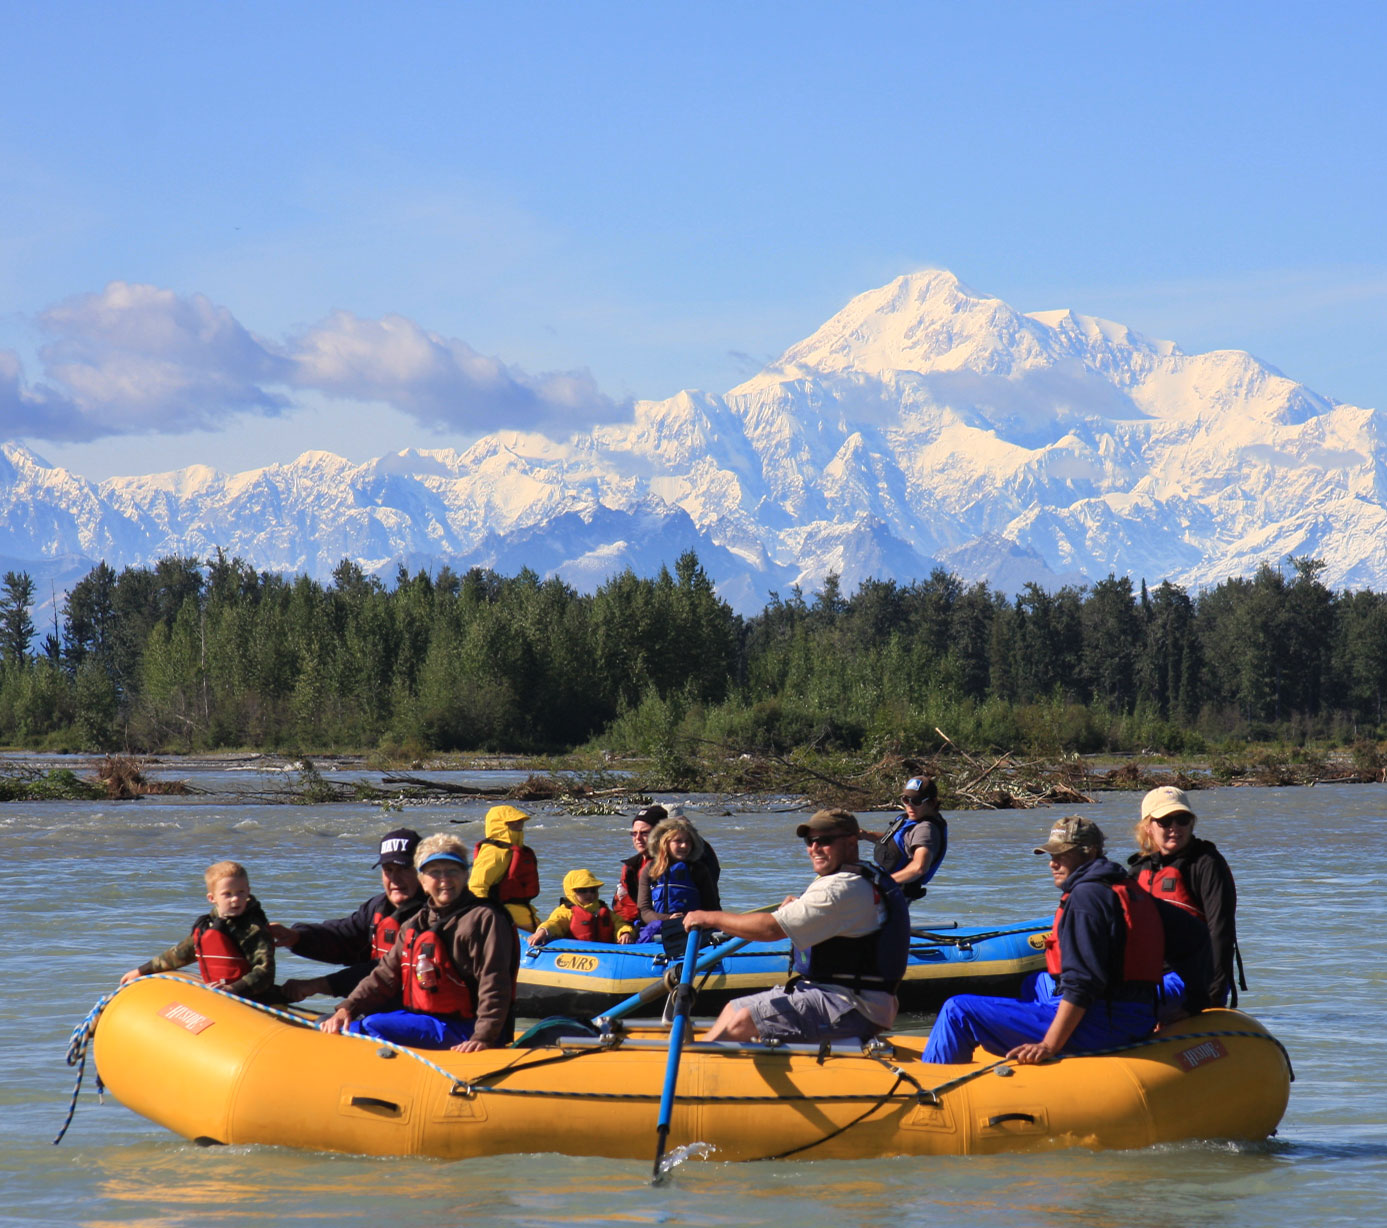 Guided rafting and kayaking tours on the Chulitna River in Denali Park, Alaska